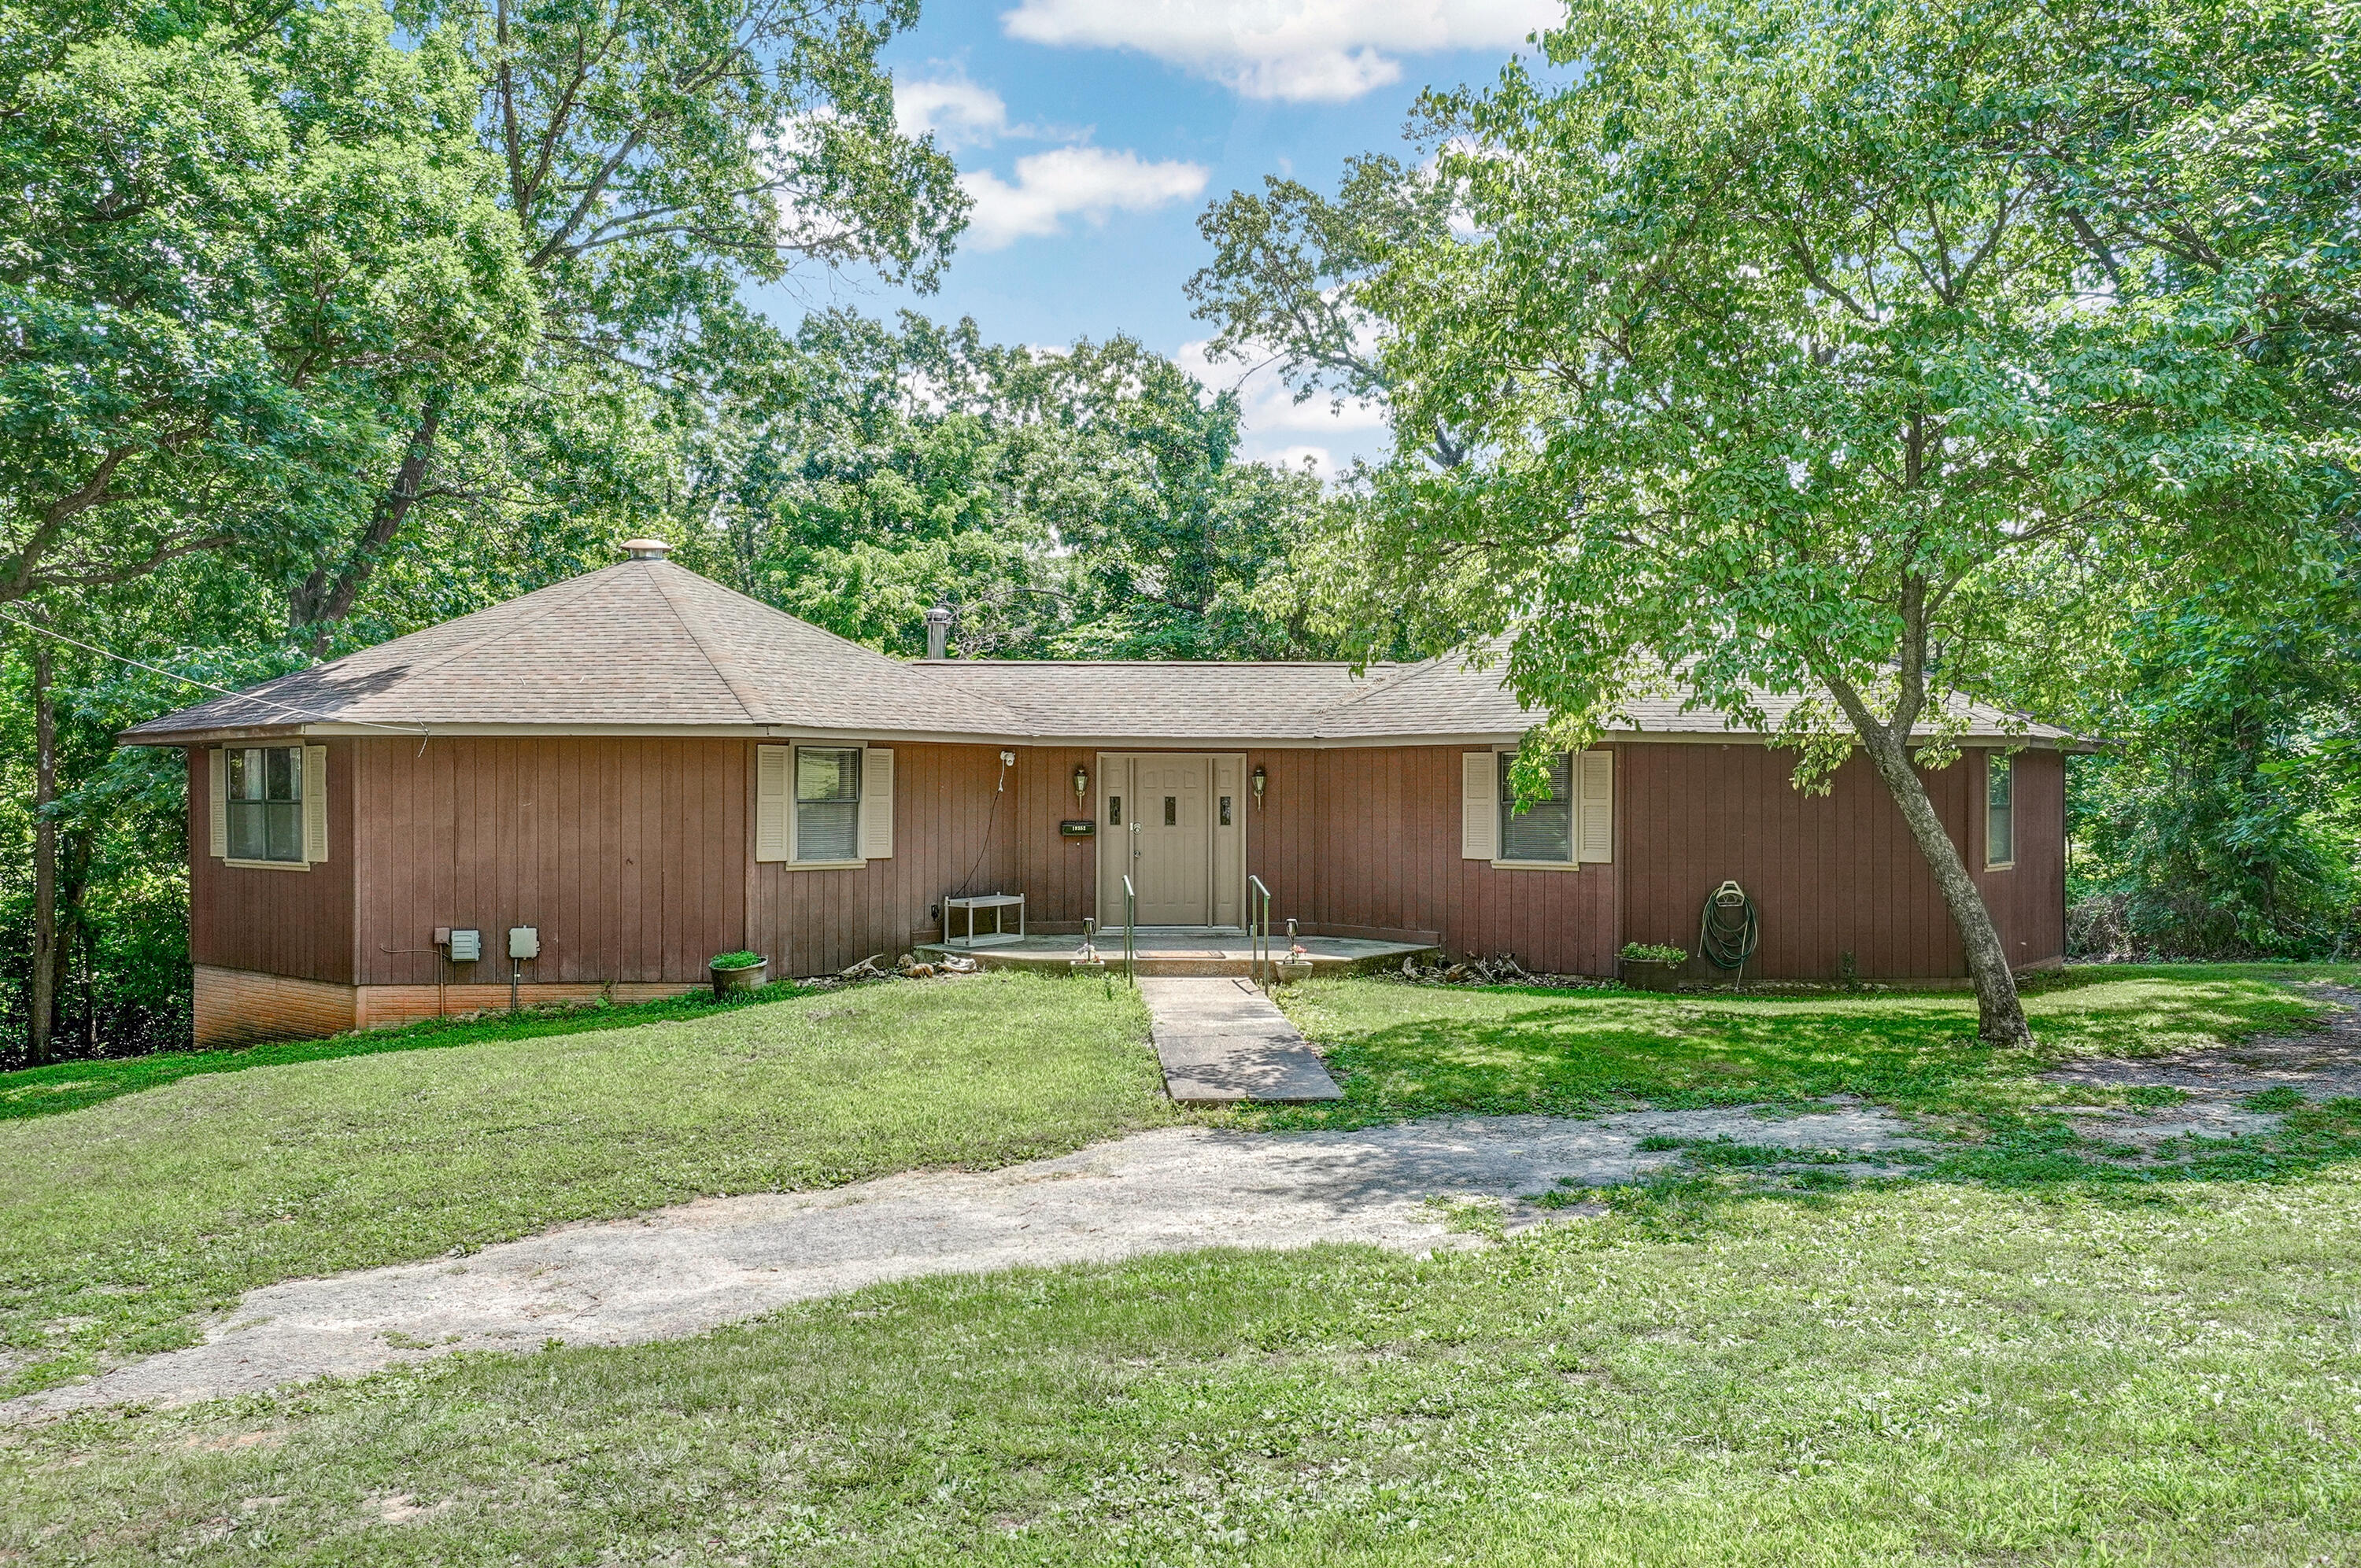 19352 State Hwy Cassville, MO 65625